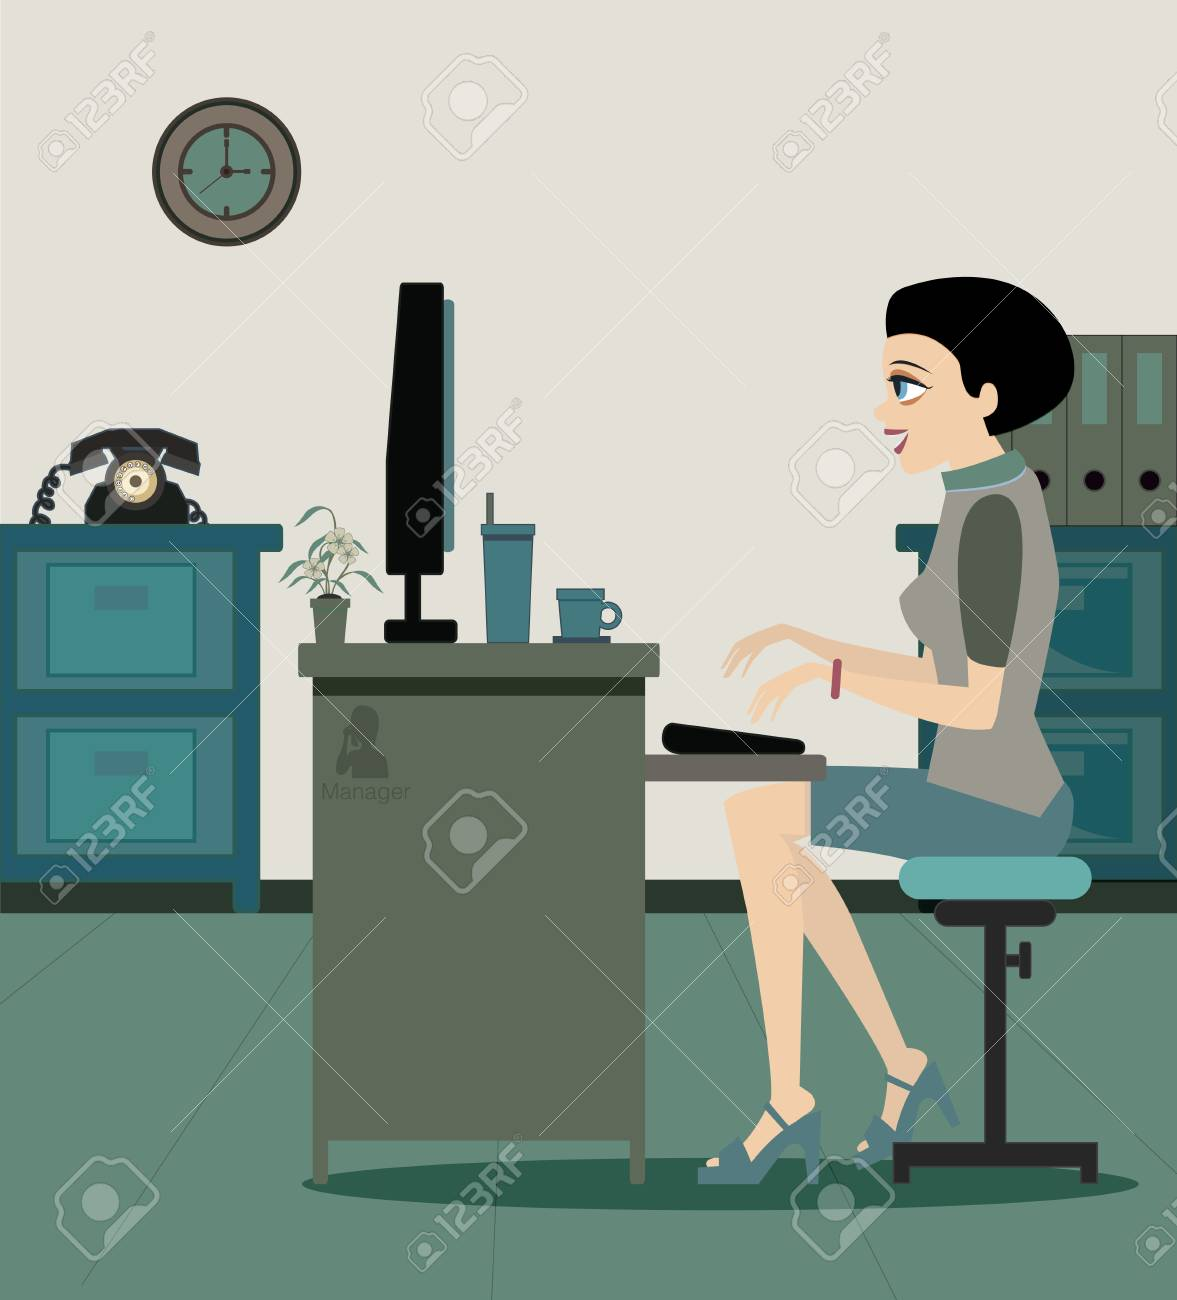 Managers working at the desk in the office Stock Vector - 22099535